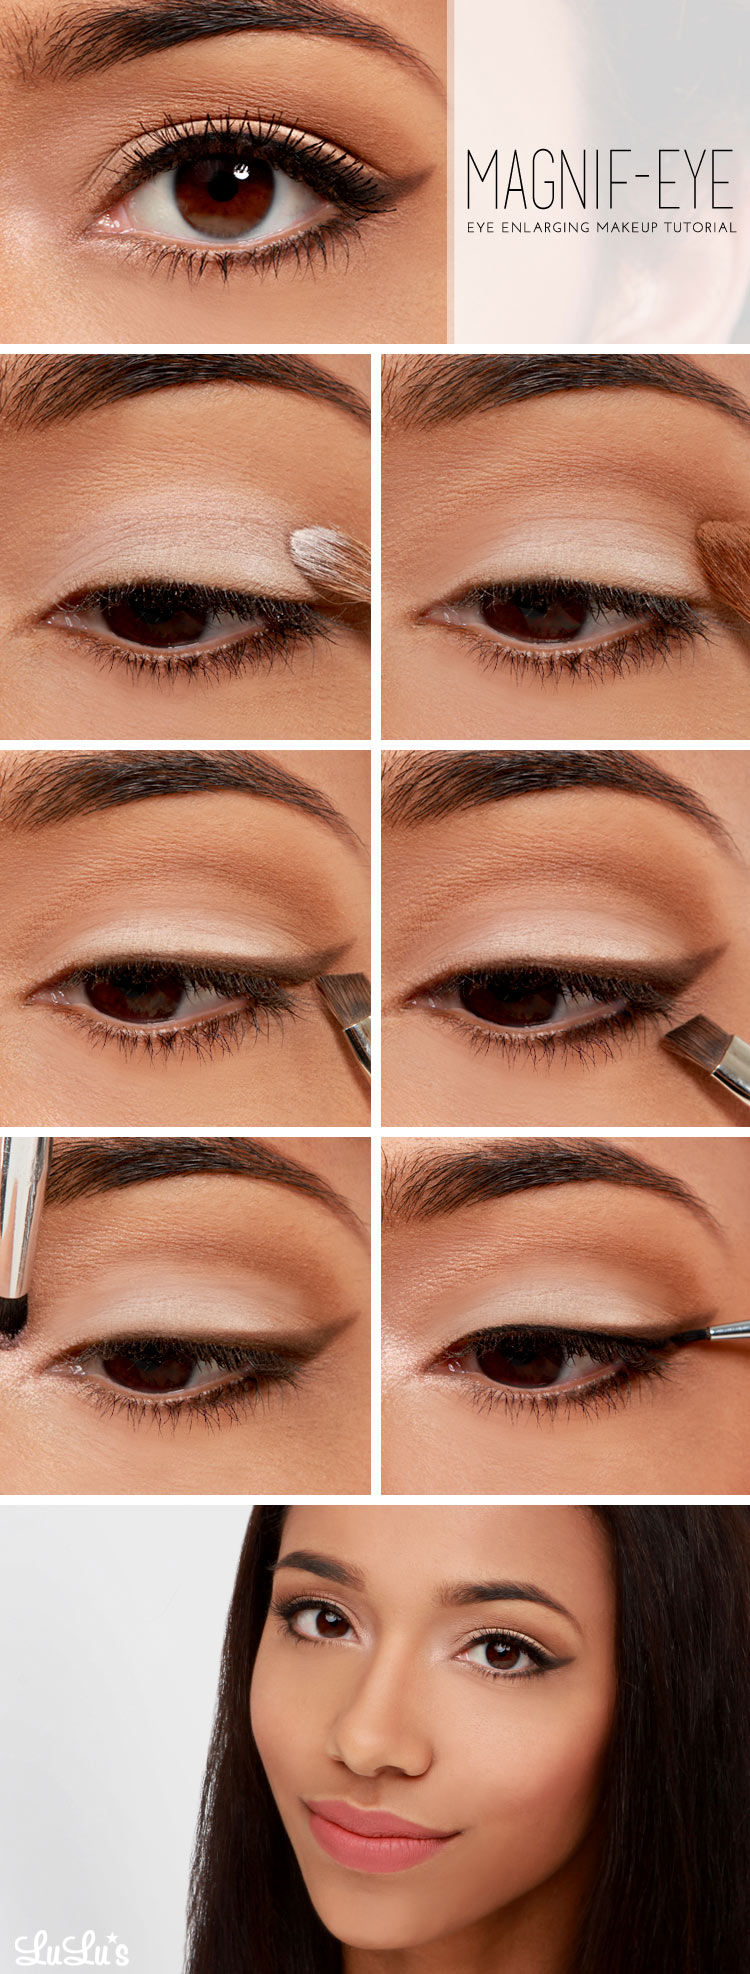 Lulus How To Eye Enlarging Makeup Tutorial Lulus Fashion Blog